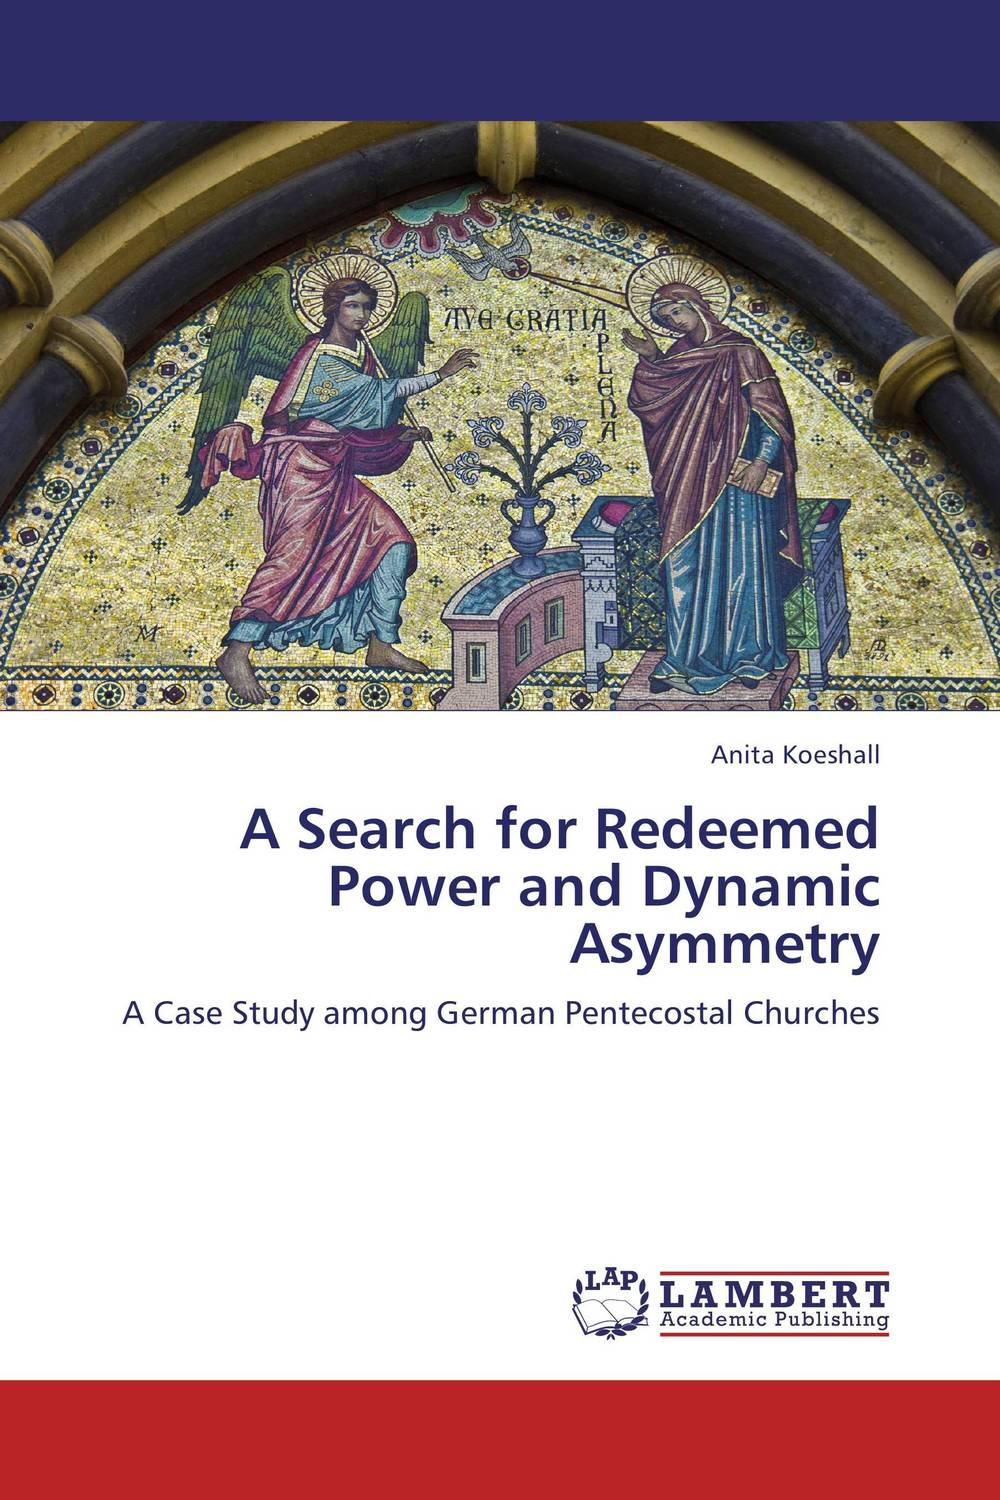 A Search for Redeemed Power and Dynamic Asymmetry gustaf af geijerstam pastor hallin